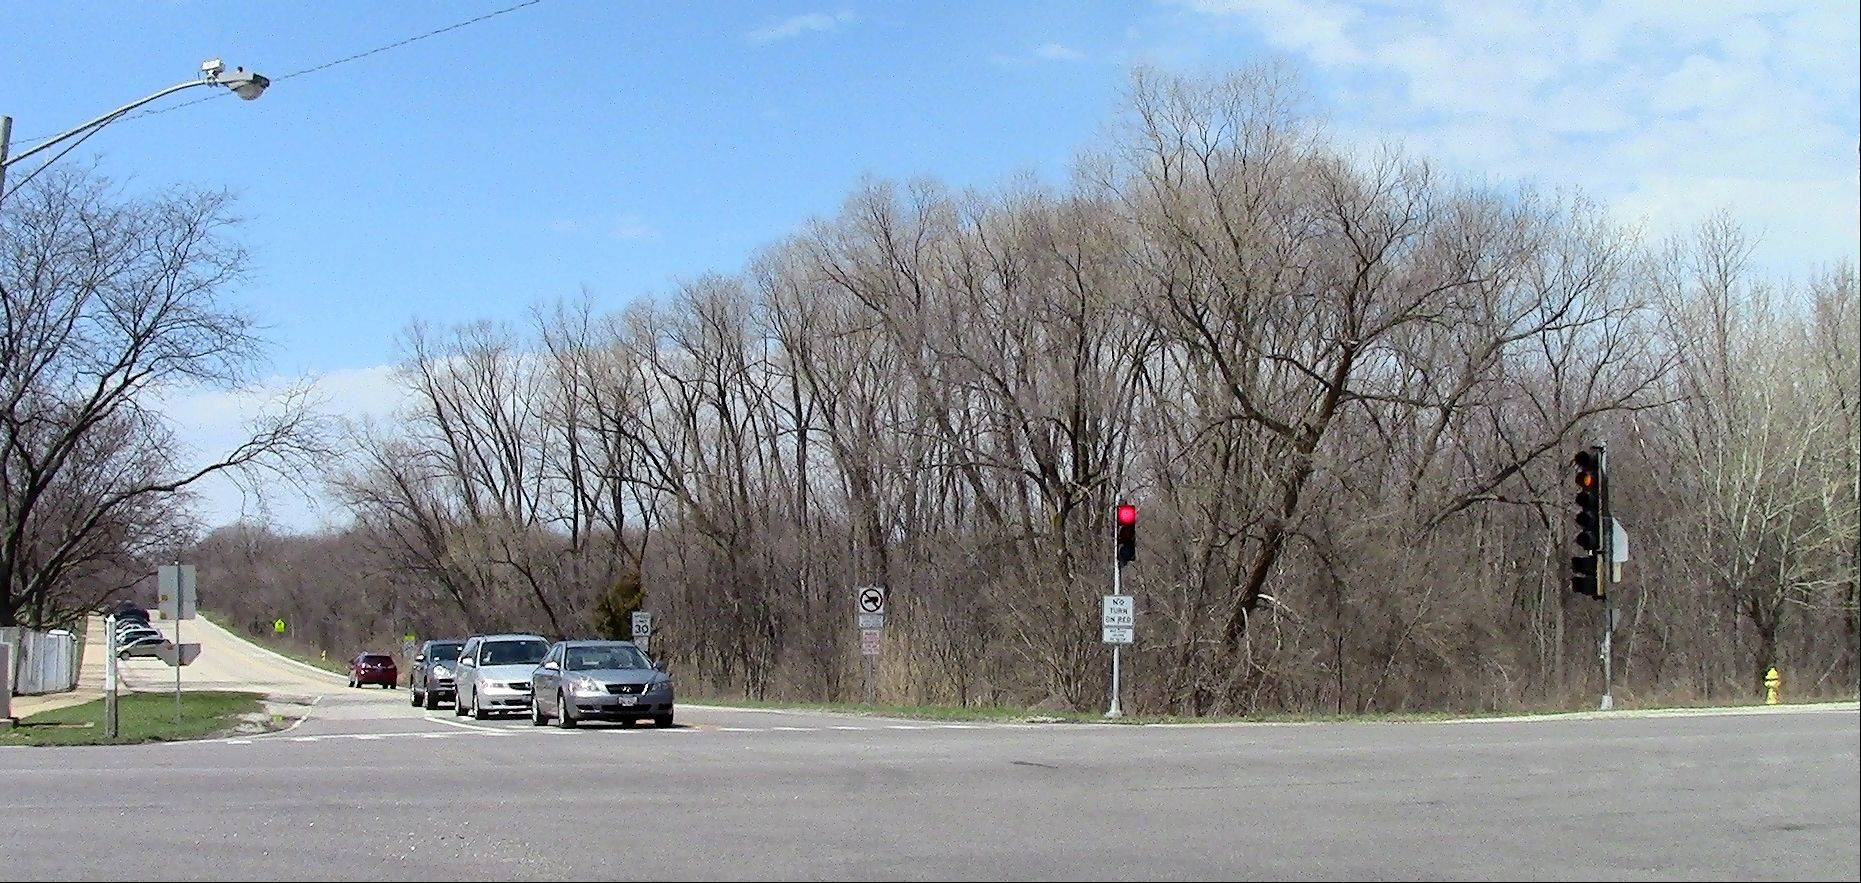 A developer is proposing to build 23 houses on nine acres at Route 53 and Sheehan Avenue in Glen Ellyn. But a majority of the village board says the project as proposed is too dense.